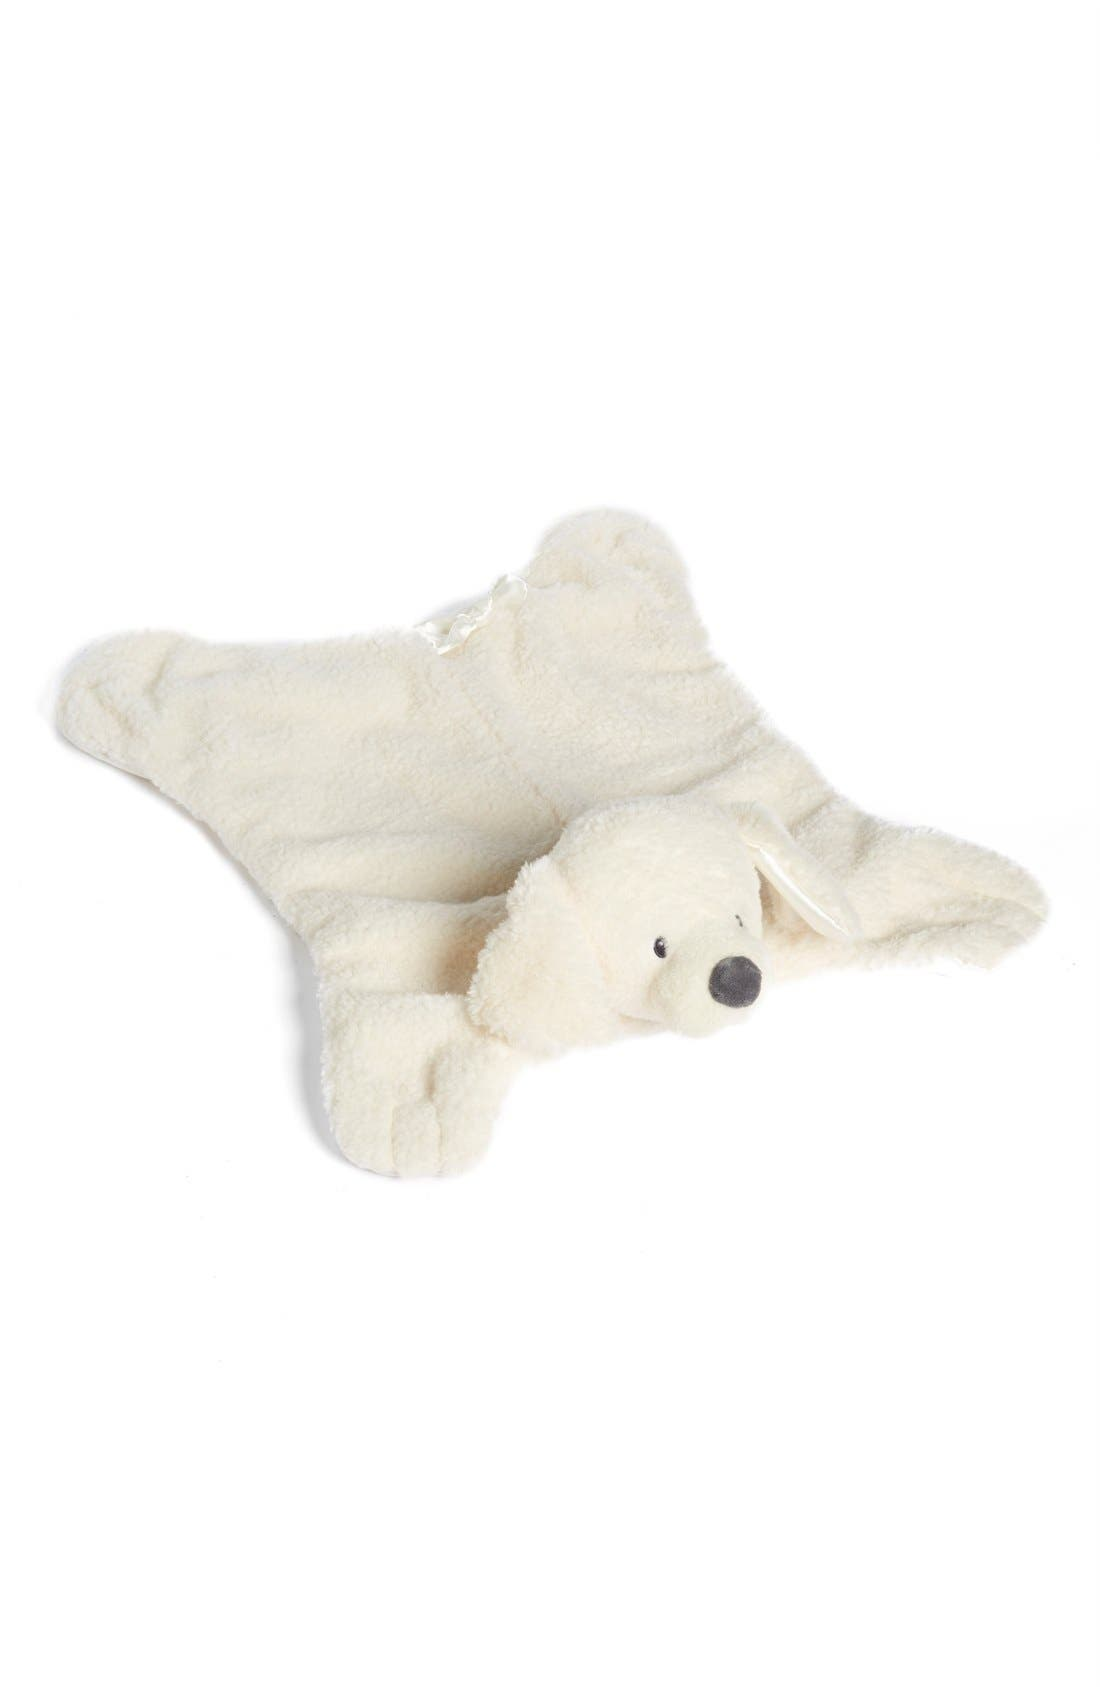 Alternate Image 1 Selected - Gund 'Comfy Cozy' Plush Toy